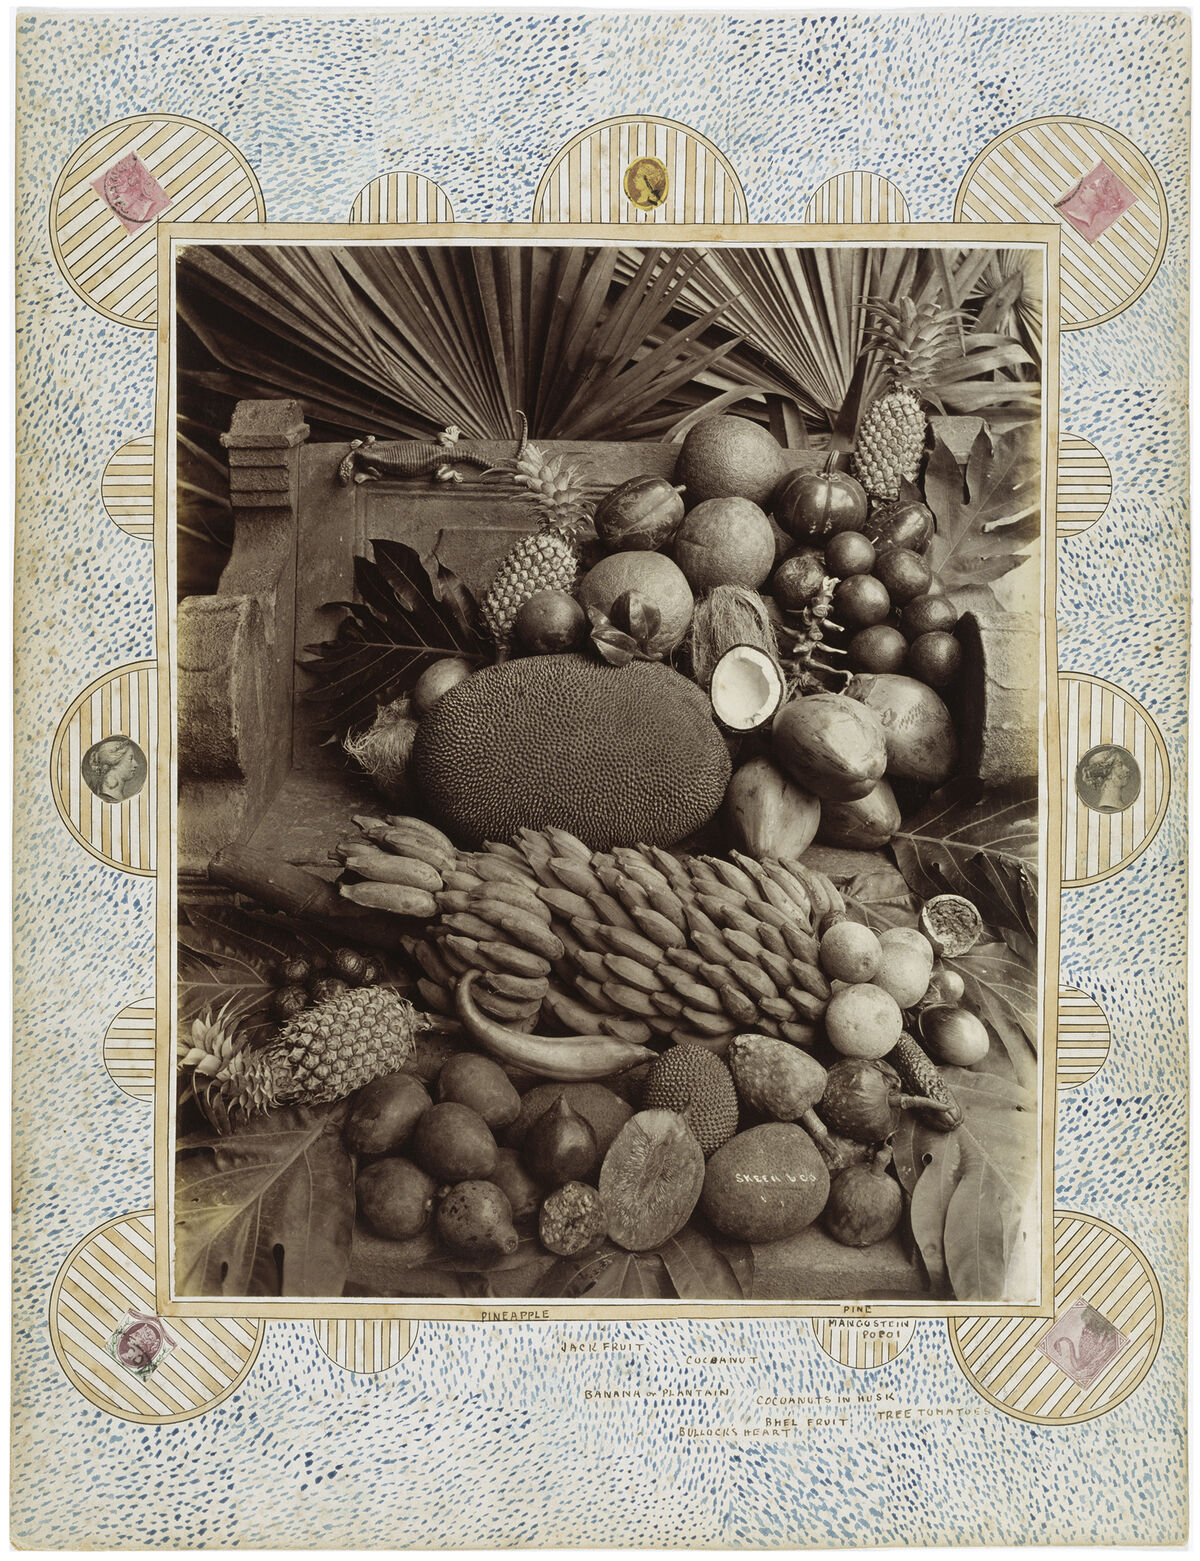 William Louis Henry Skeen, Still Life of Exotic Fruits and Lizard from Ceylon, Colombo, Sri  Lanka, ca. 1880. Image from Feast for the Eyes (Aperture, 2017). Courtesy of Victoria and Albert Museum, London.